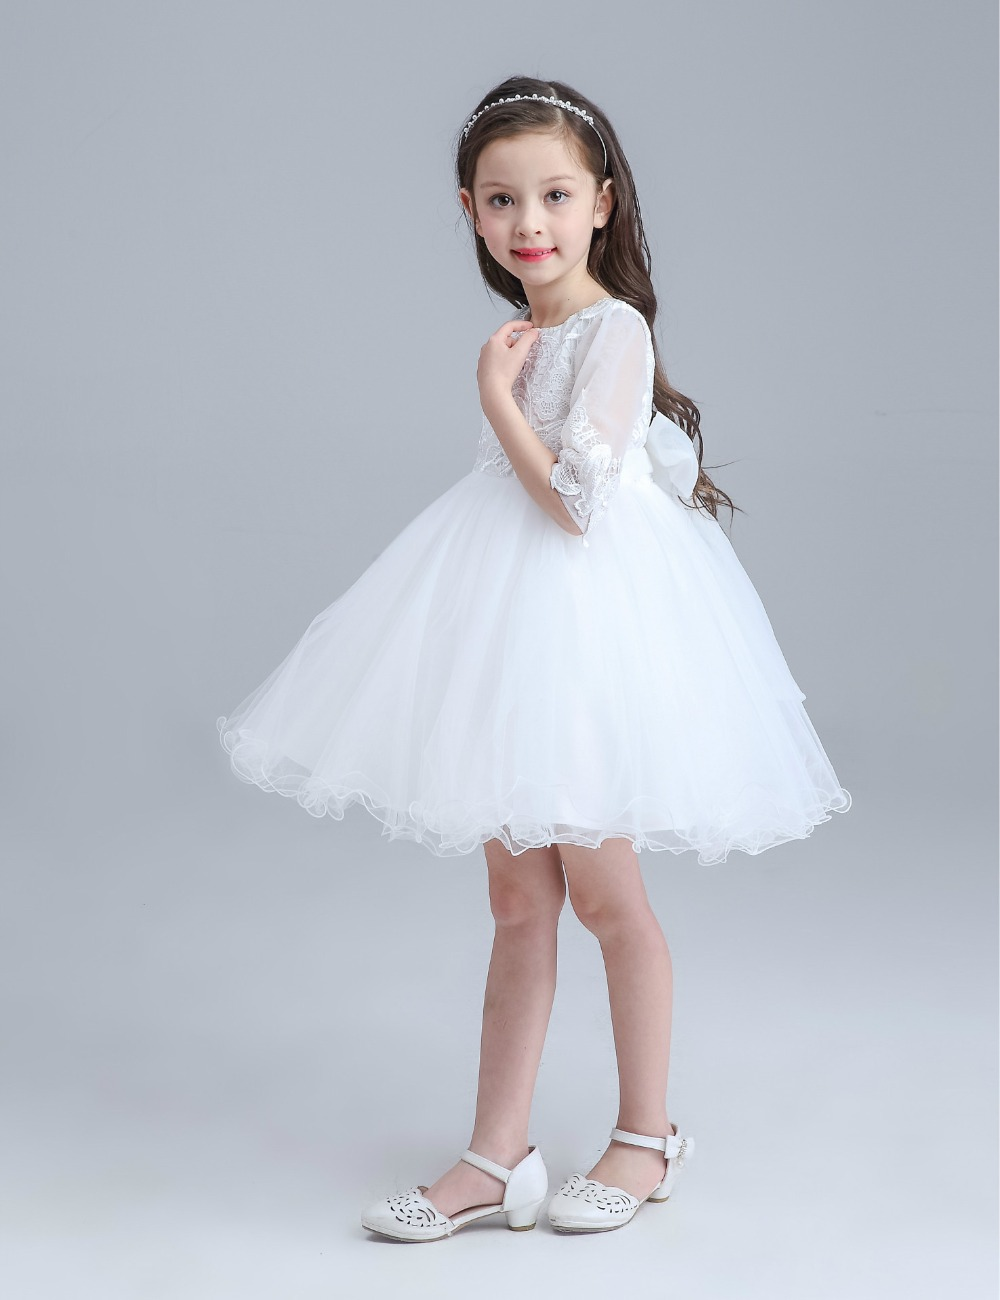 Compare prices on bridesmaid baby dresses online shoppingbuy low white girls bridesmaid wedding prom party ball gown formal party dresses 2016 toddler infant nine quarter ombrellifo Image collections